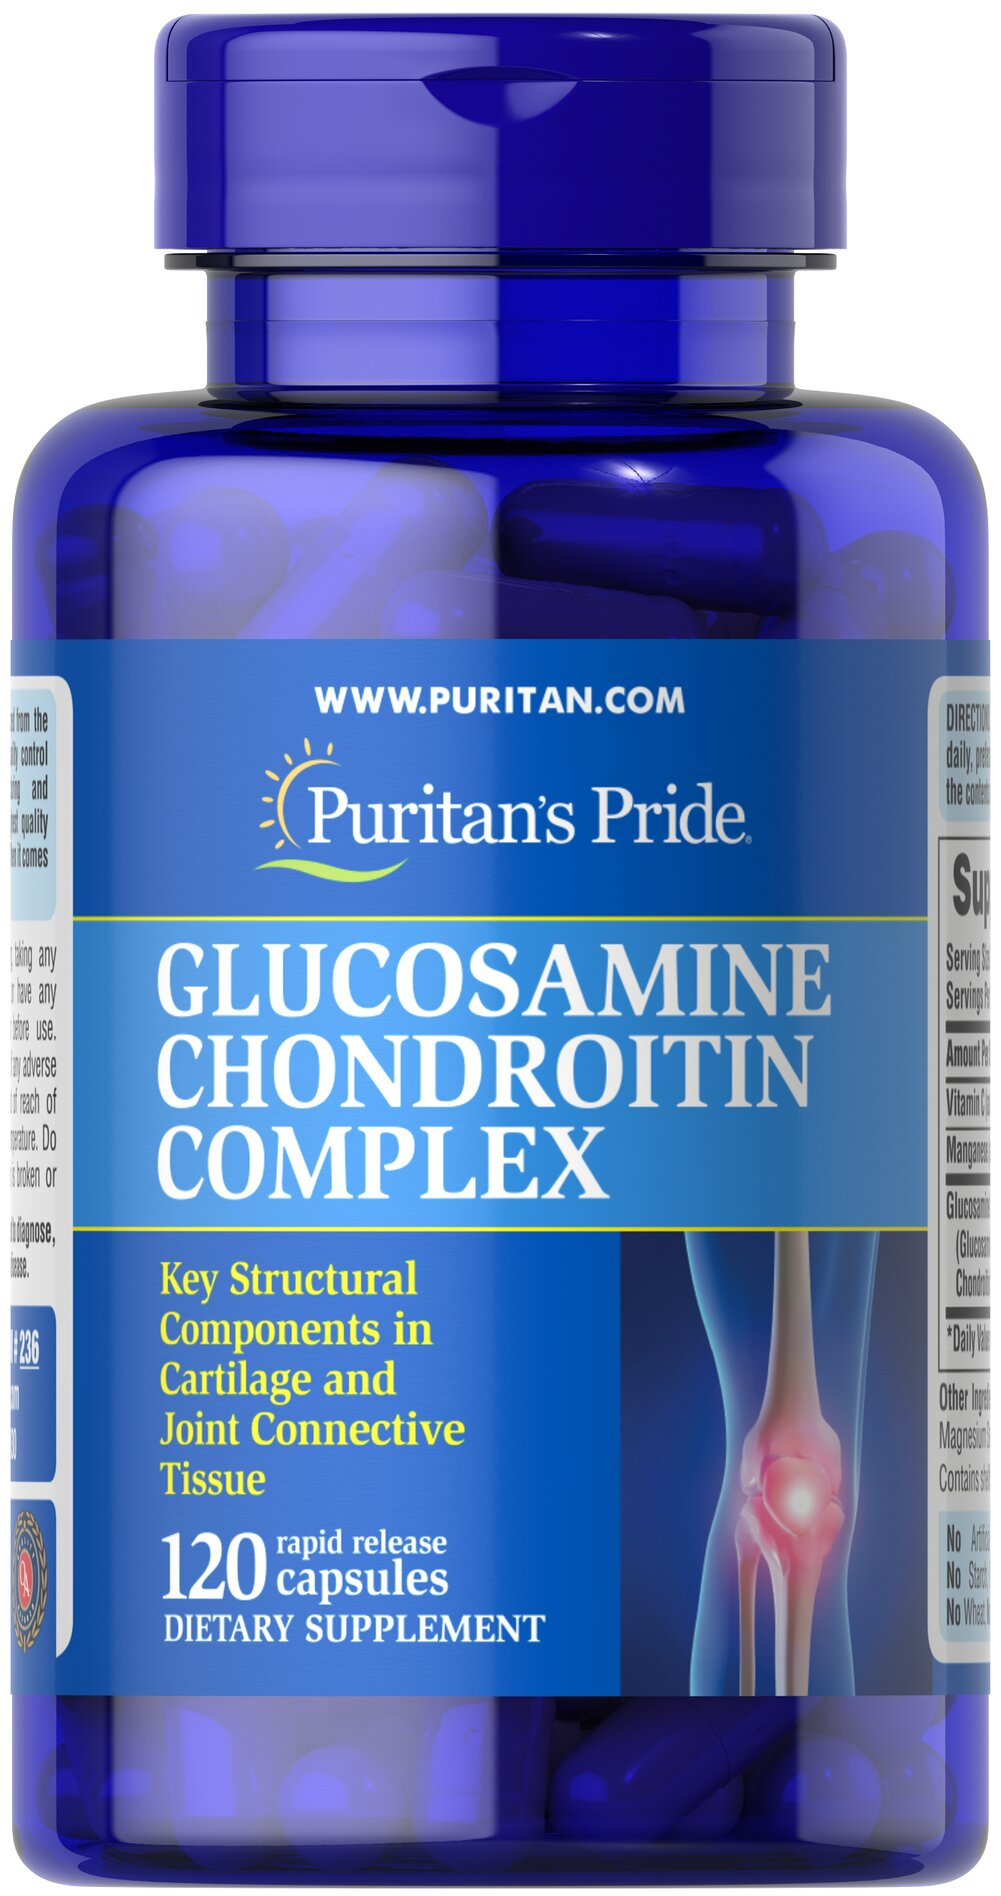 Glucosamine Chondroitin Complex 250 mg/200 mg <p><strong>Glucosamine and Chondroitin Sulfate</strong> are key structural components in cartilage and play an important role in the maintenance of joint cartilage.** This formulation promotes mobility and flexibility for comfortable joint movement by delivering 500 mg Glucosamine Sulfate and 400 mg Chondroitin; additional ingredients include Vitamin C and Manganese. Adults can take two capsules three times daily with a meal.</p&